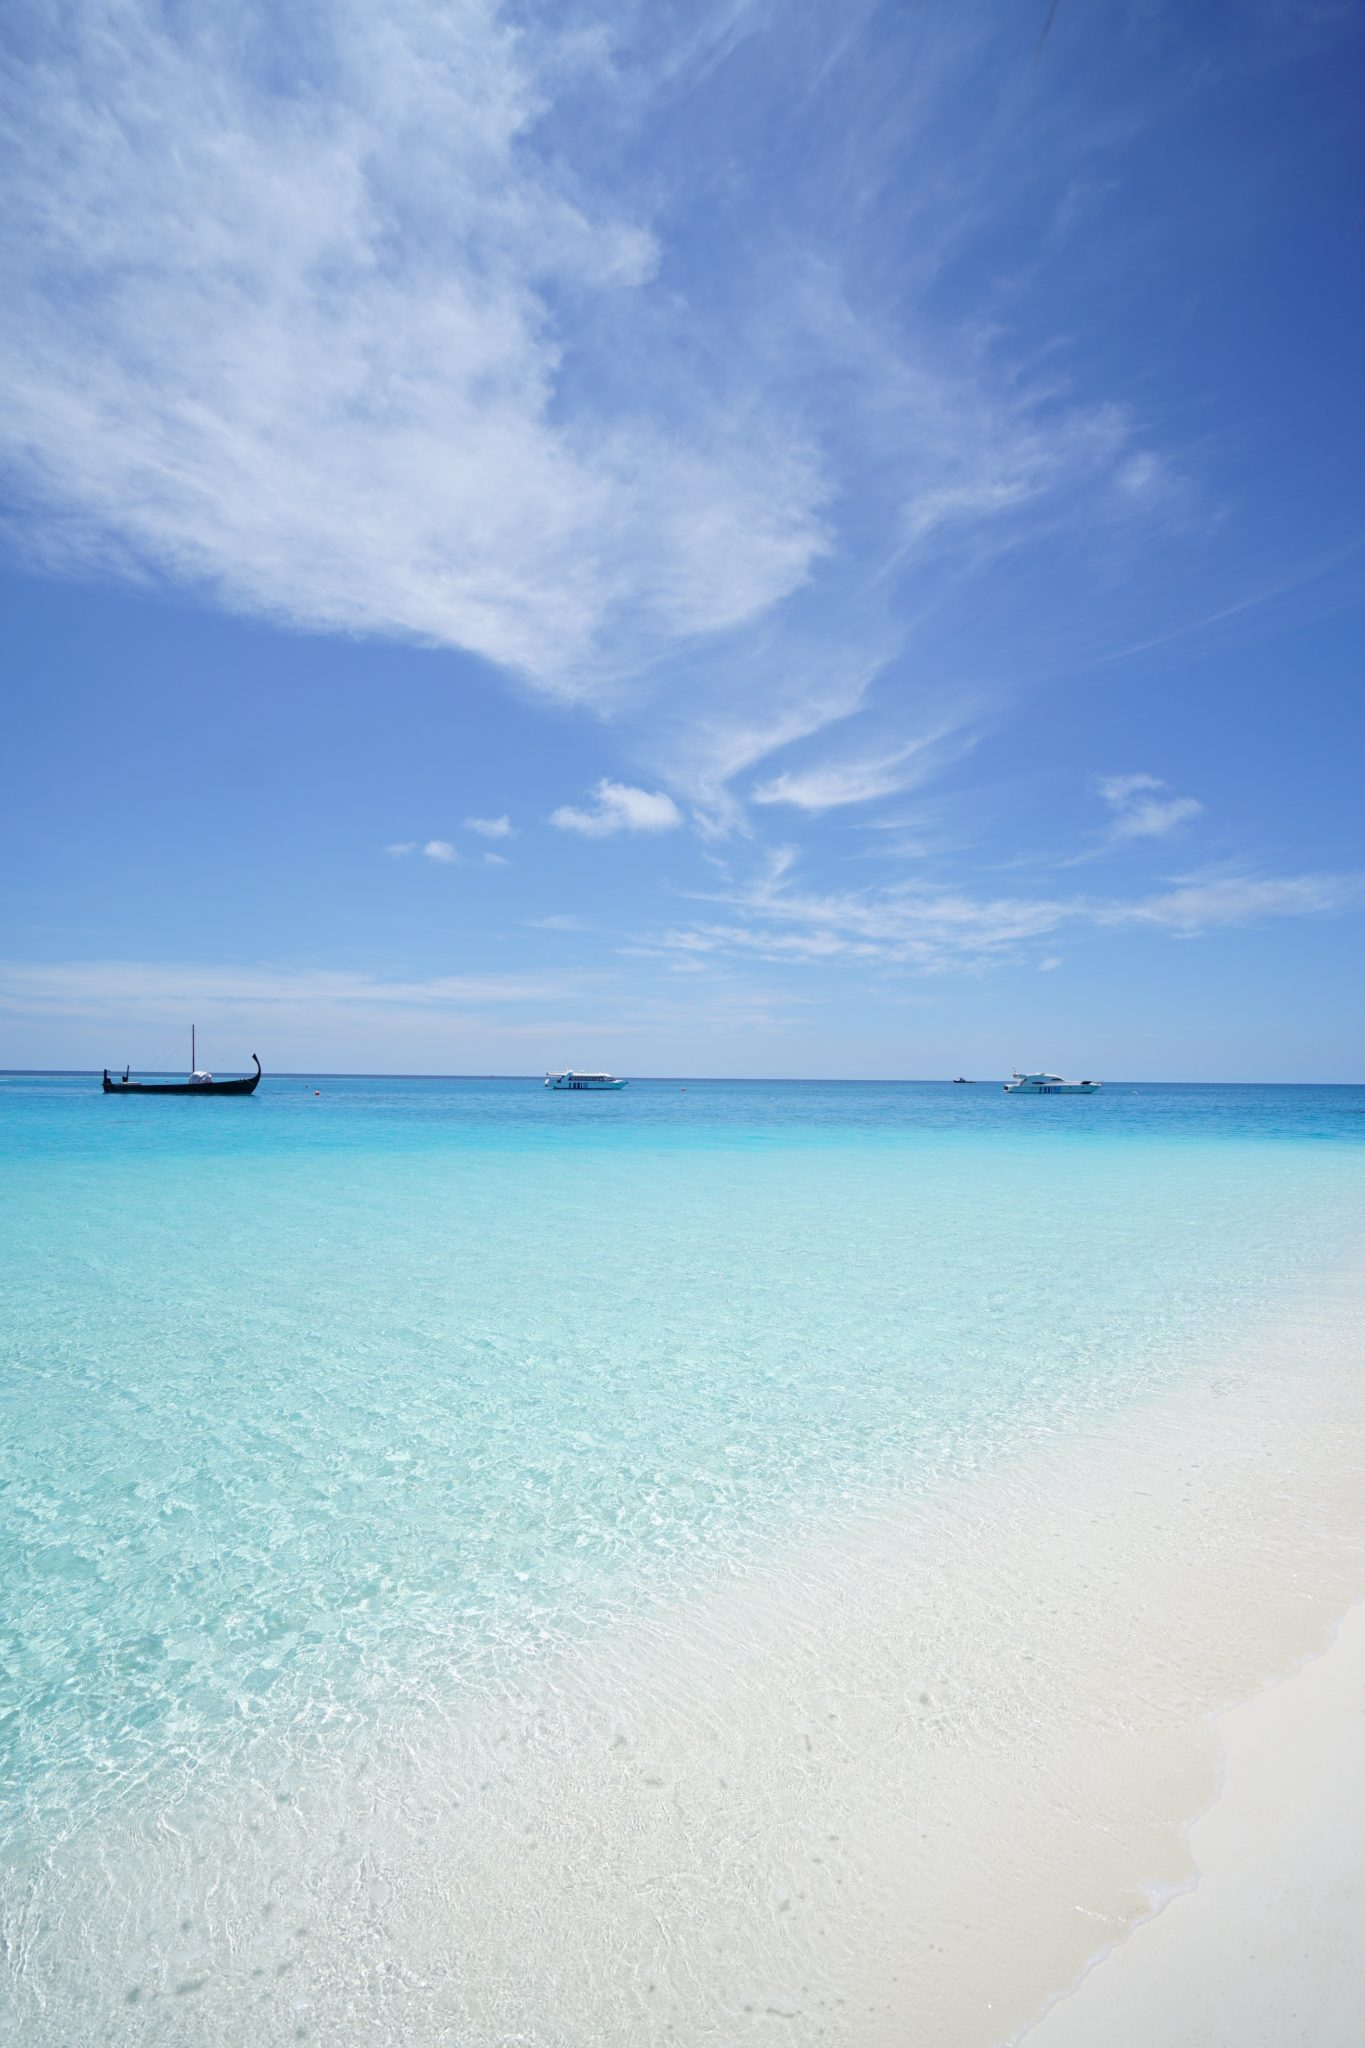 Cheap flights from Brussels to Zanzibar - from 355€!